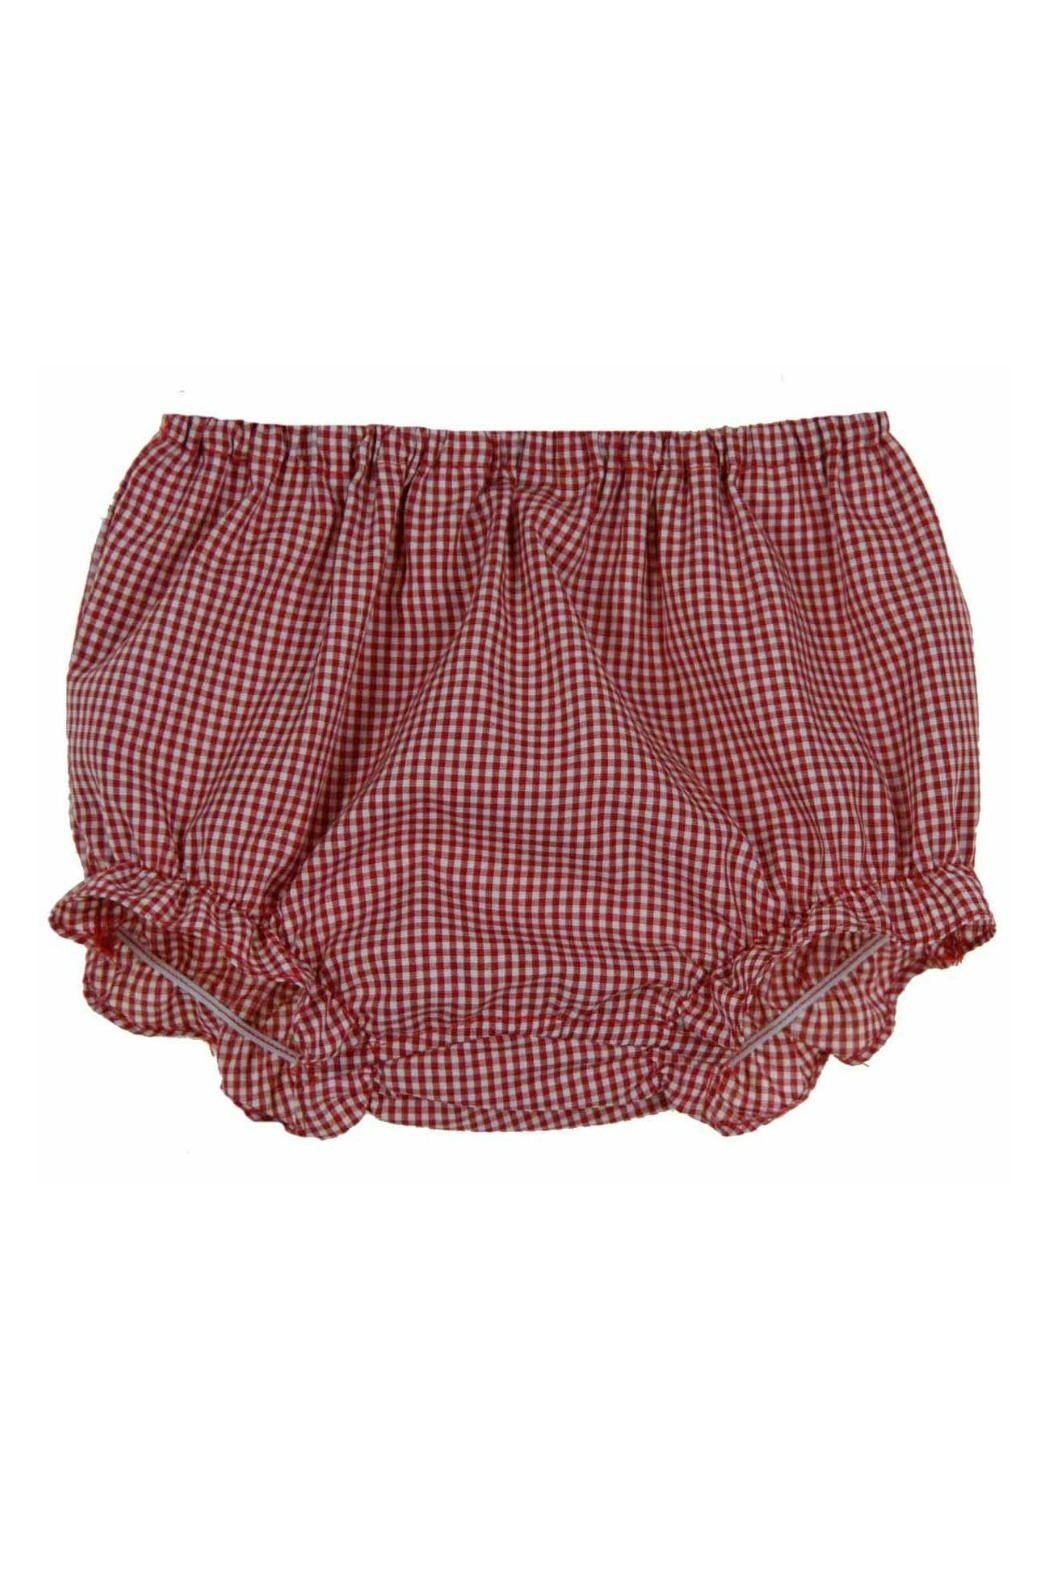 Rosalina Red-Gingham-Ruffled Diaper Cover - Front Full Image